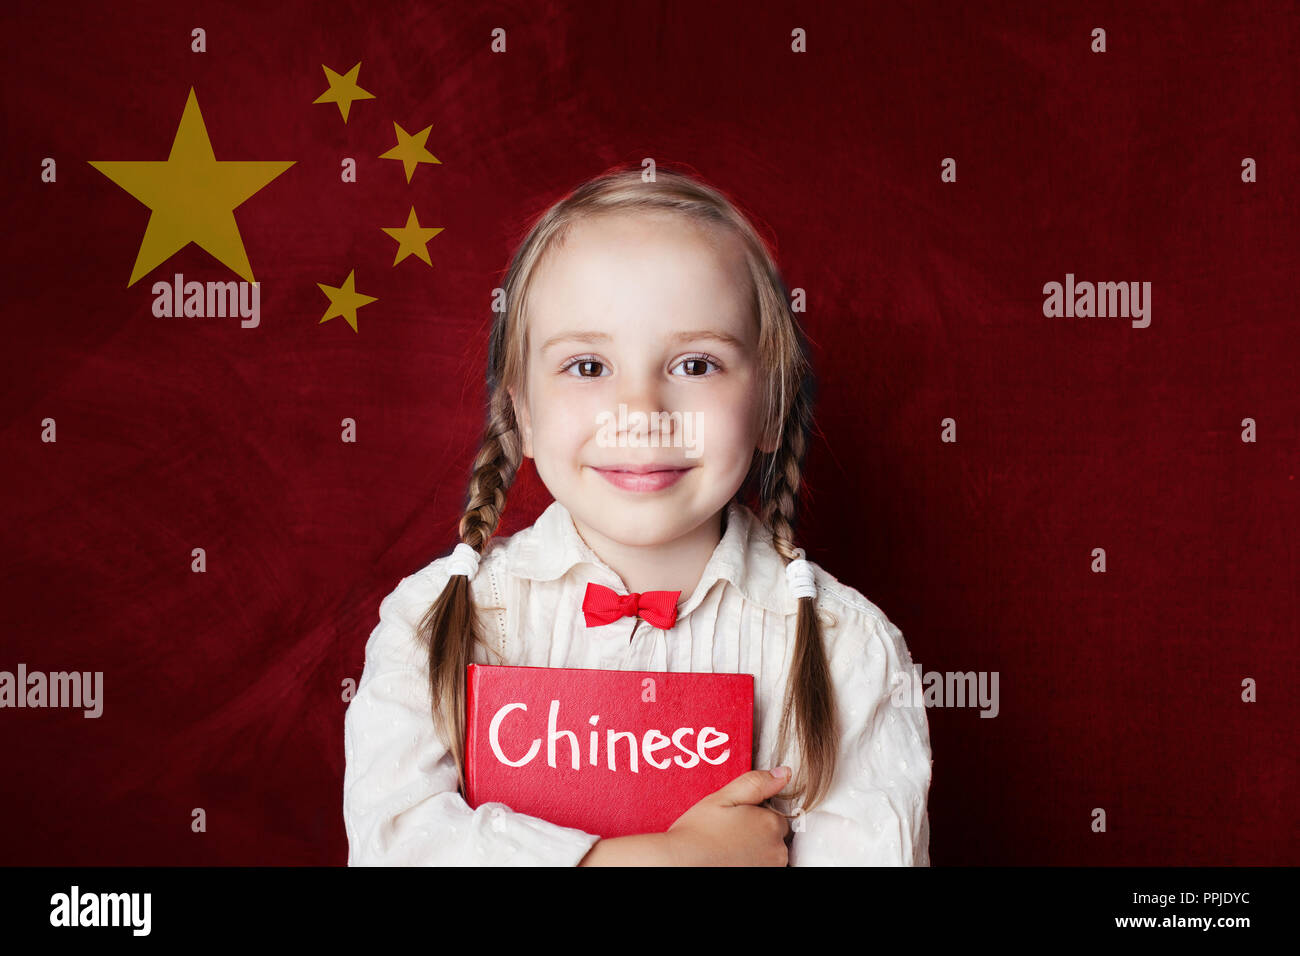 Chinese concept. Little girl student with book against the Chinese flag background. Learn language - Stock Image